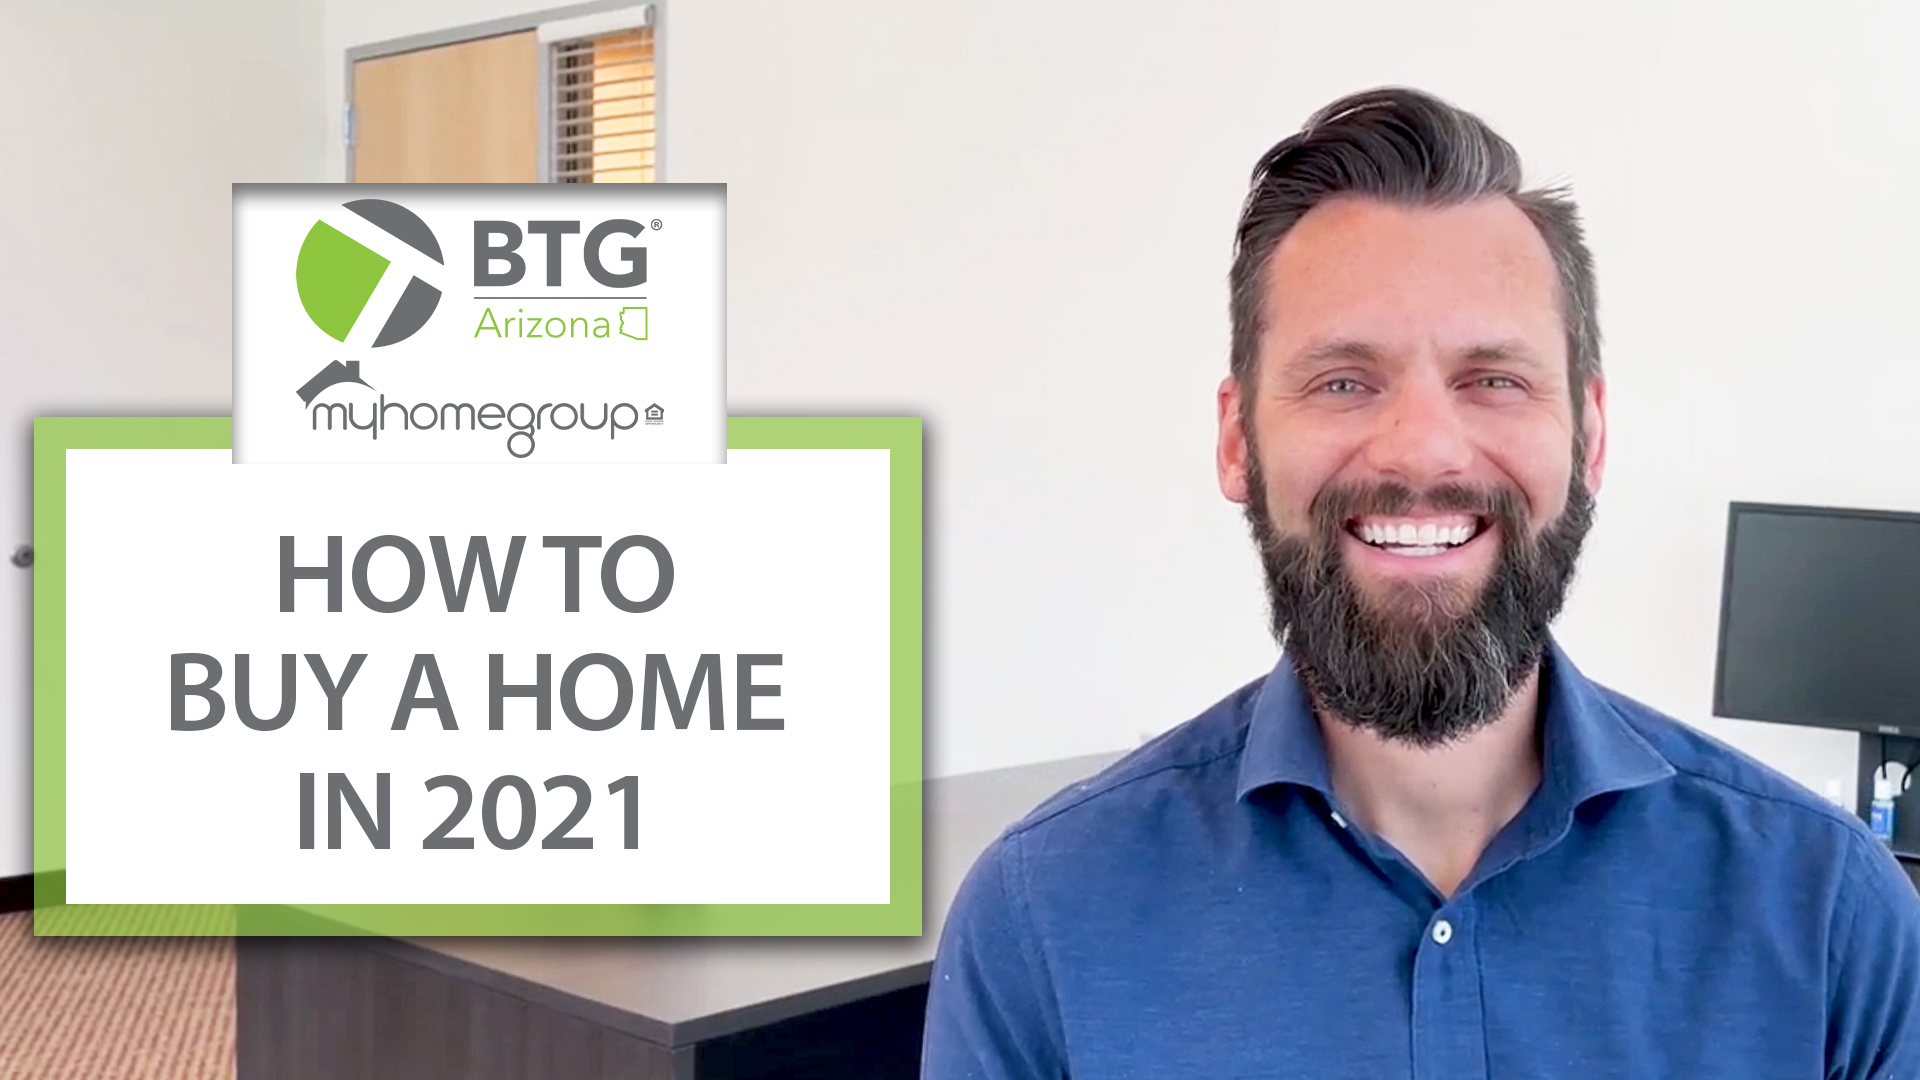 4 Tips for Buying a Home in 2021